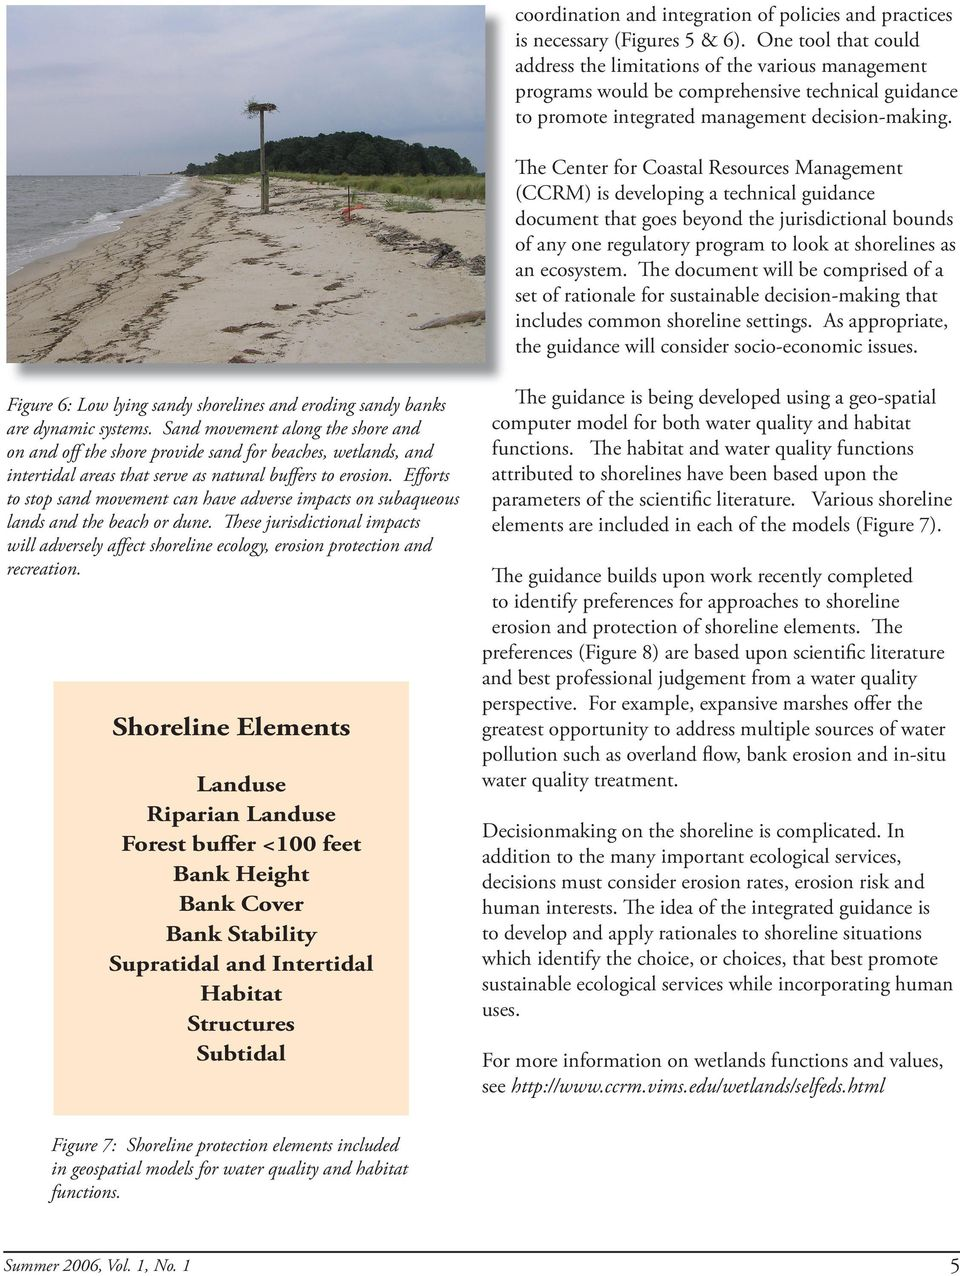 The Center for Coastal Resources Management (CCRM) is developing a technical guidance document that goes beyond the jurisdictional bounds of any one regulatory program to look at shorelines as an